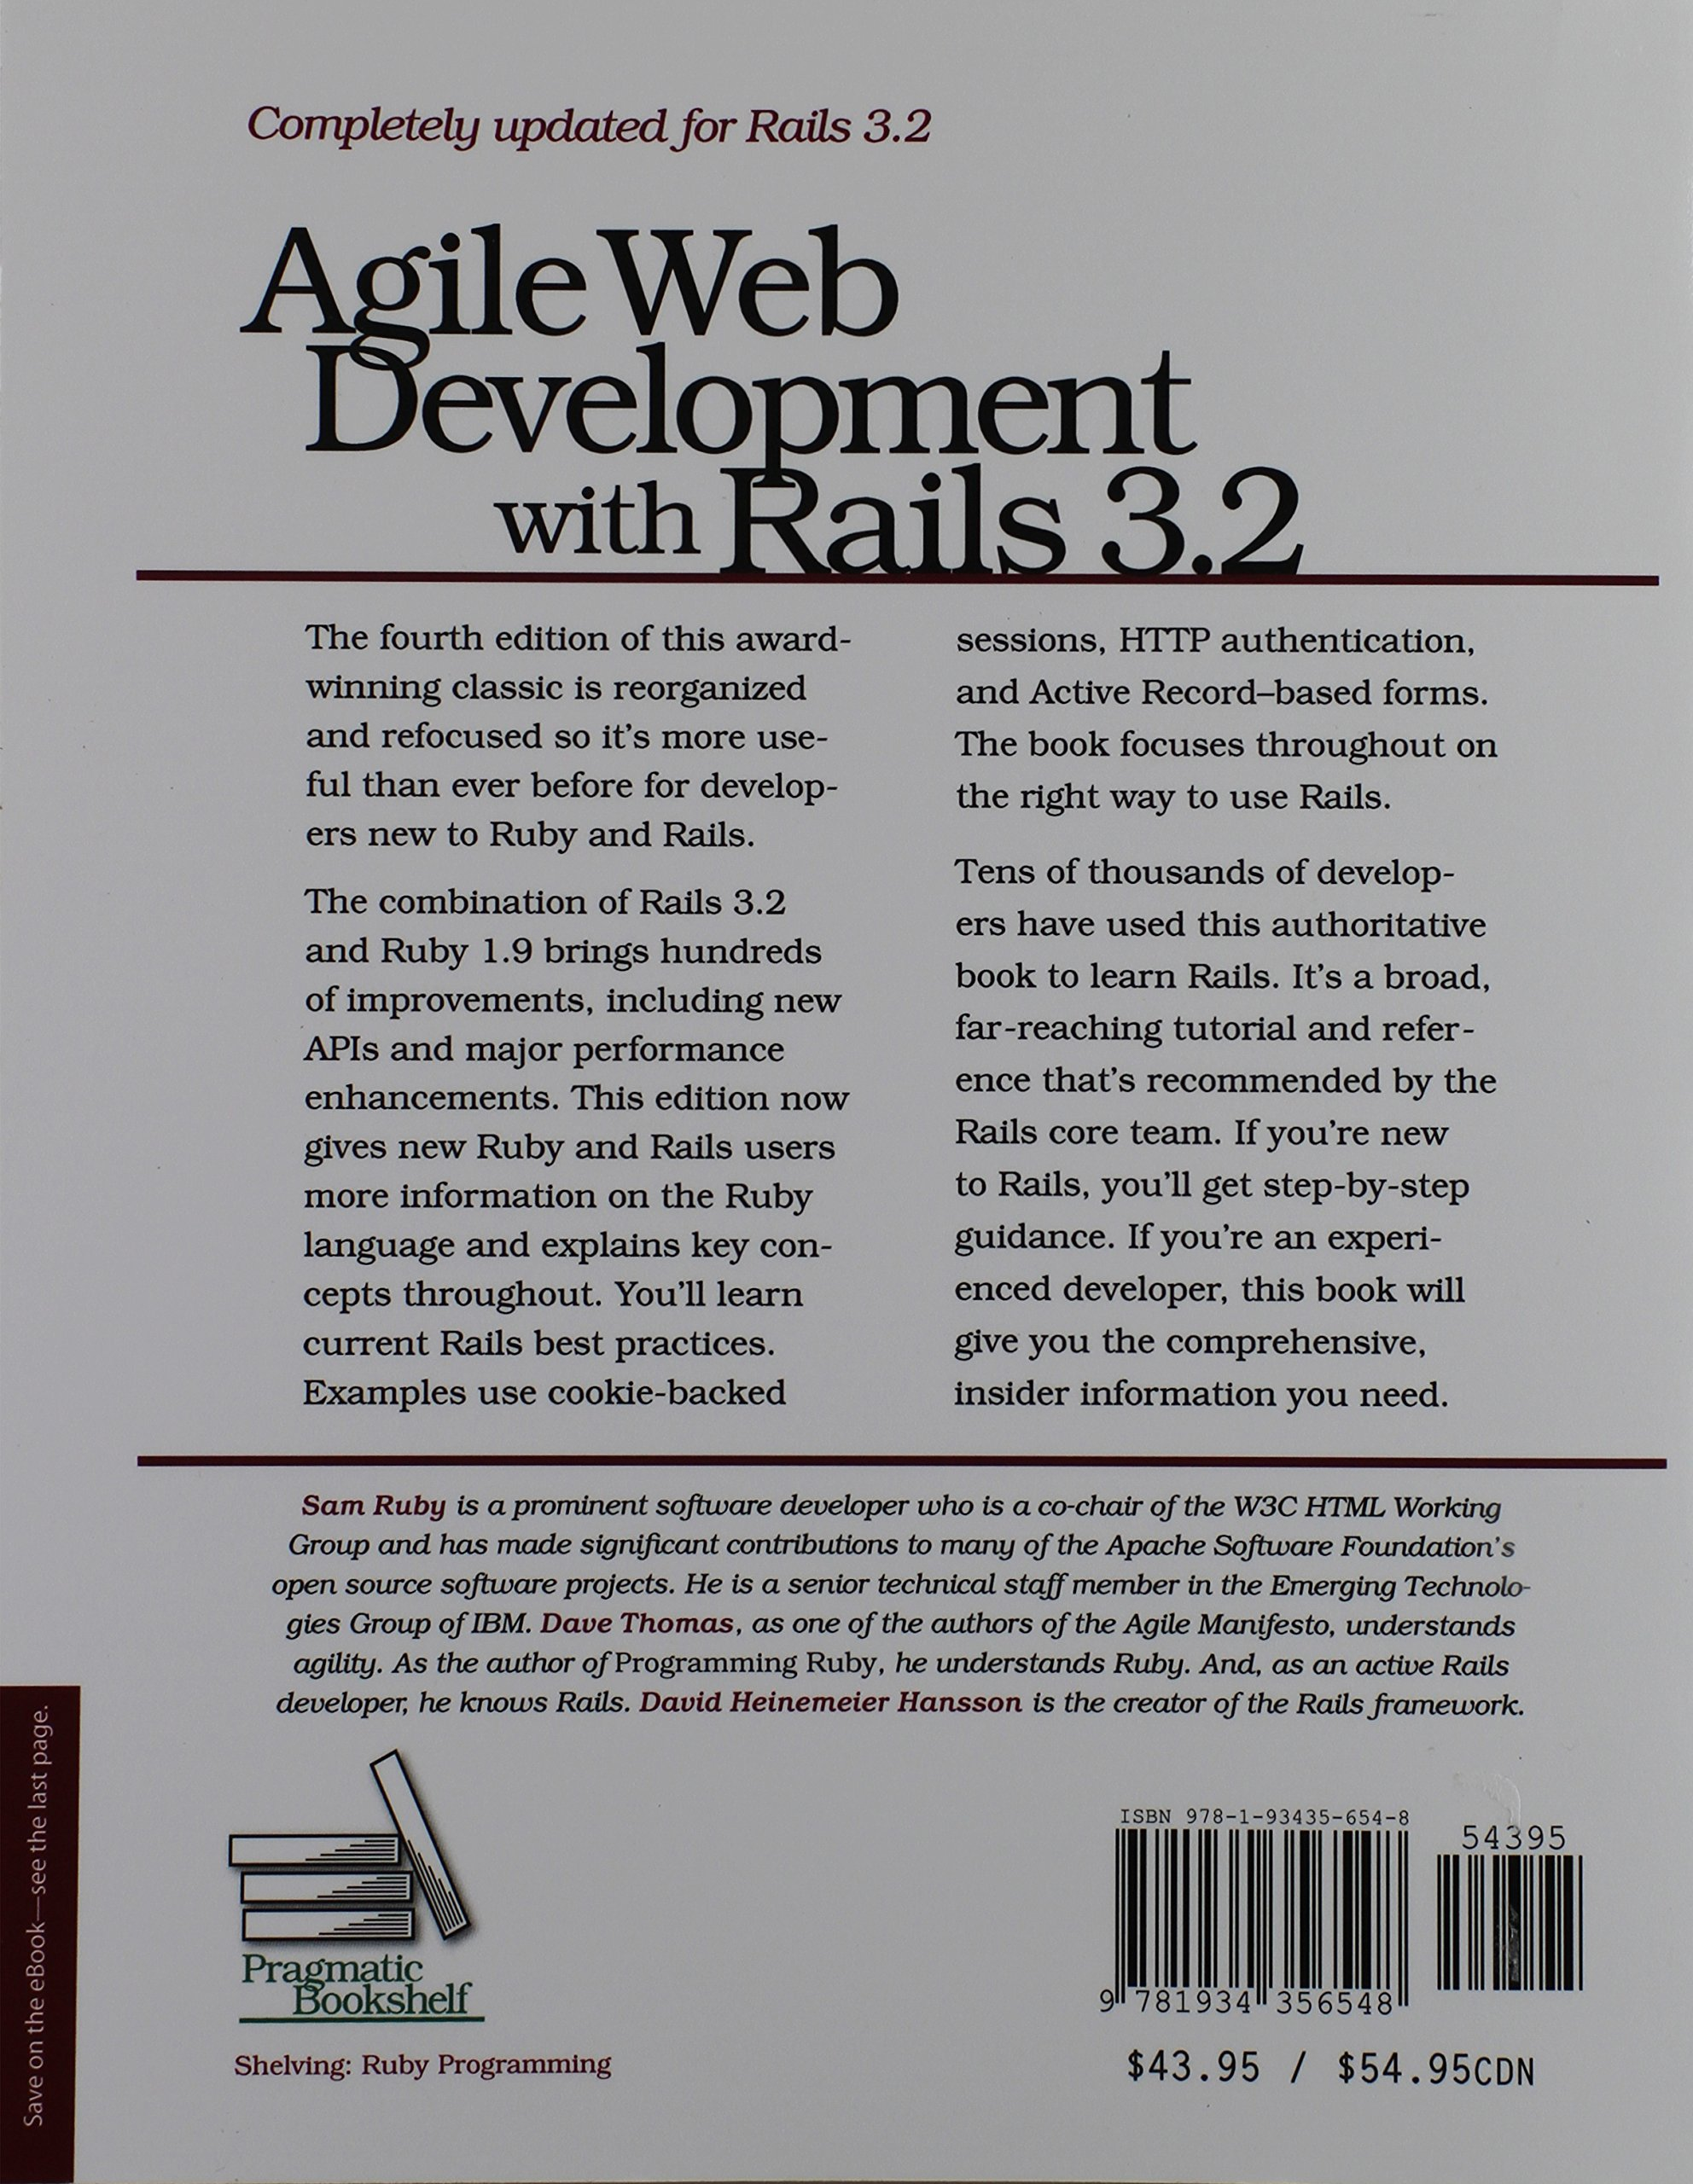 Agile web development with rails 3 2 pragmatic programmers amazon co uk sam ruby dave thomas david heinemeier hansson 9781934356548 books